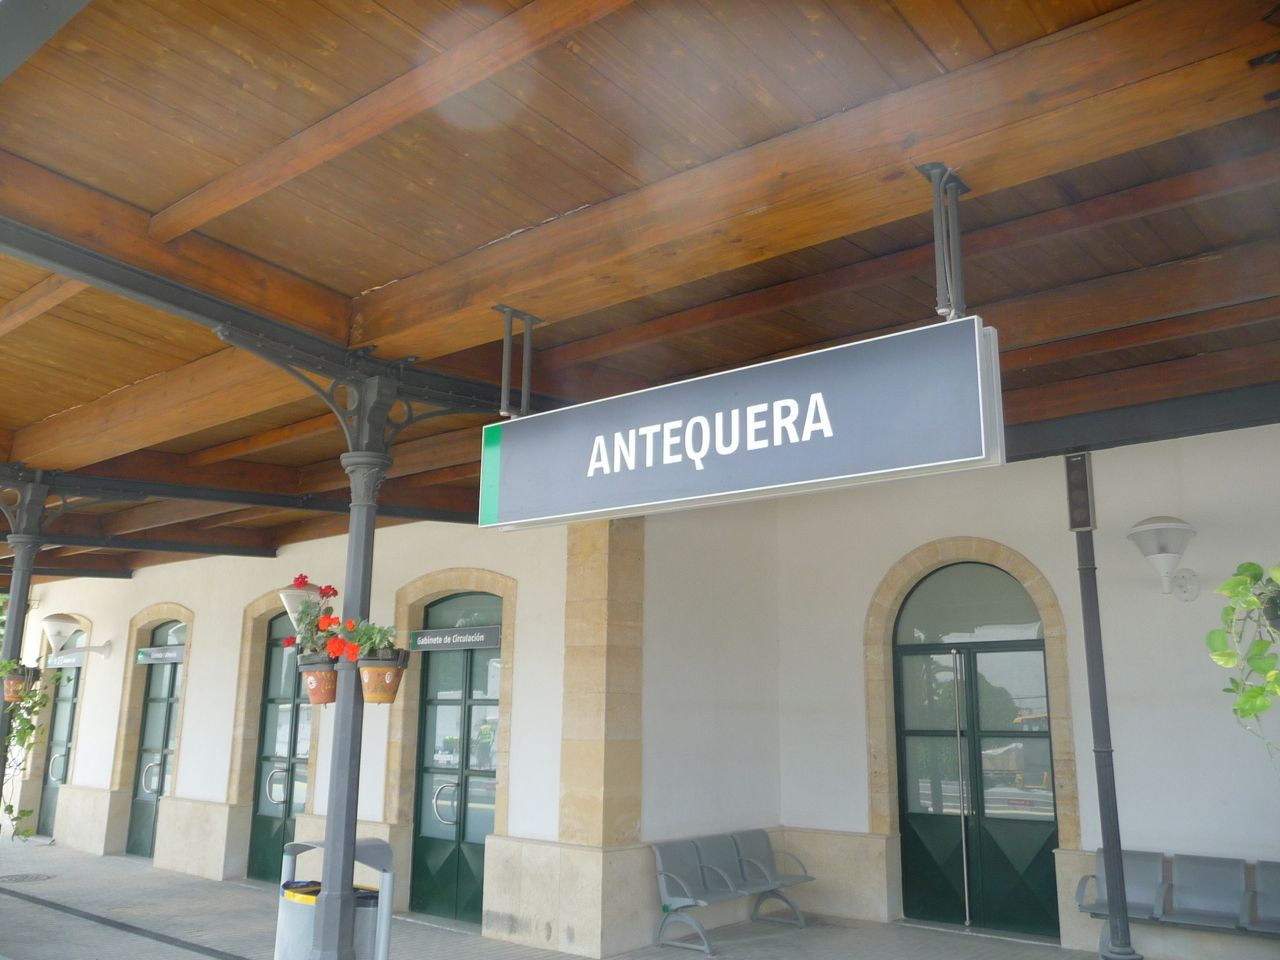 In Antequera – The Sights